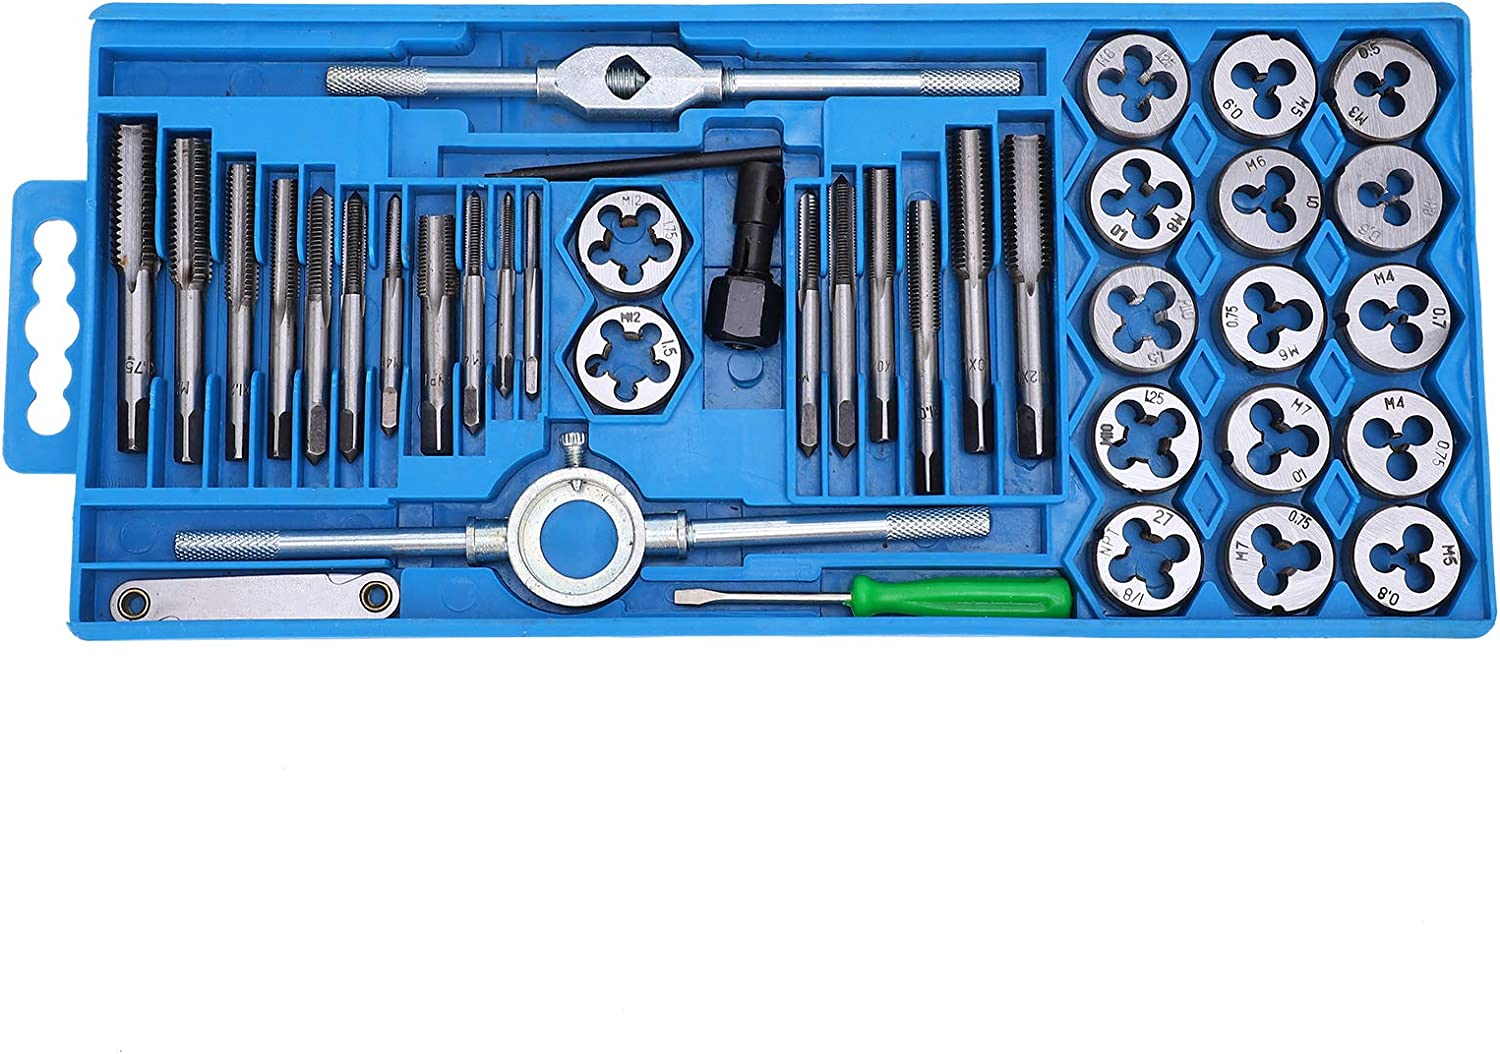 YIUS 40pcs Metric Tap and price Die Set Carbon Milling Steel Max 74% OFF Thre Hand